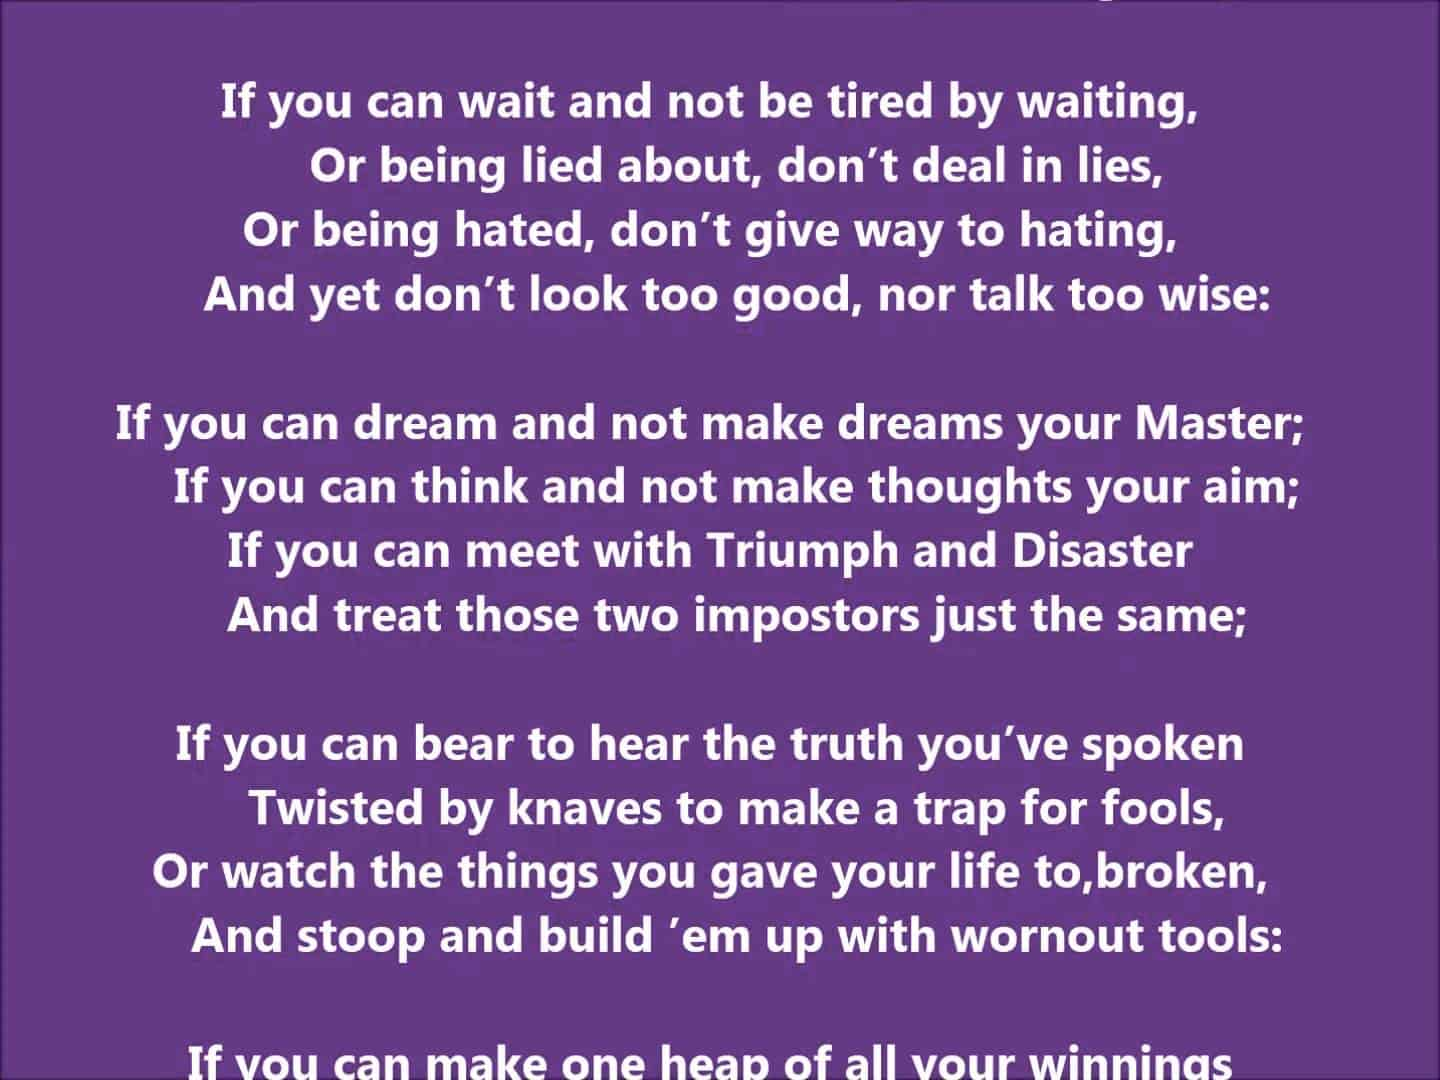 Motivational Poem If By Rudyard Kipling Wellnessworks Reflections on peace by sir michael cainethe rights to the audio content in this video belong to the respective copyright holders. motivational poem if by rudyard kipling